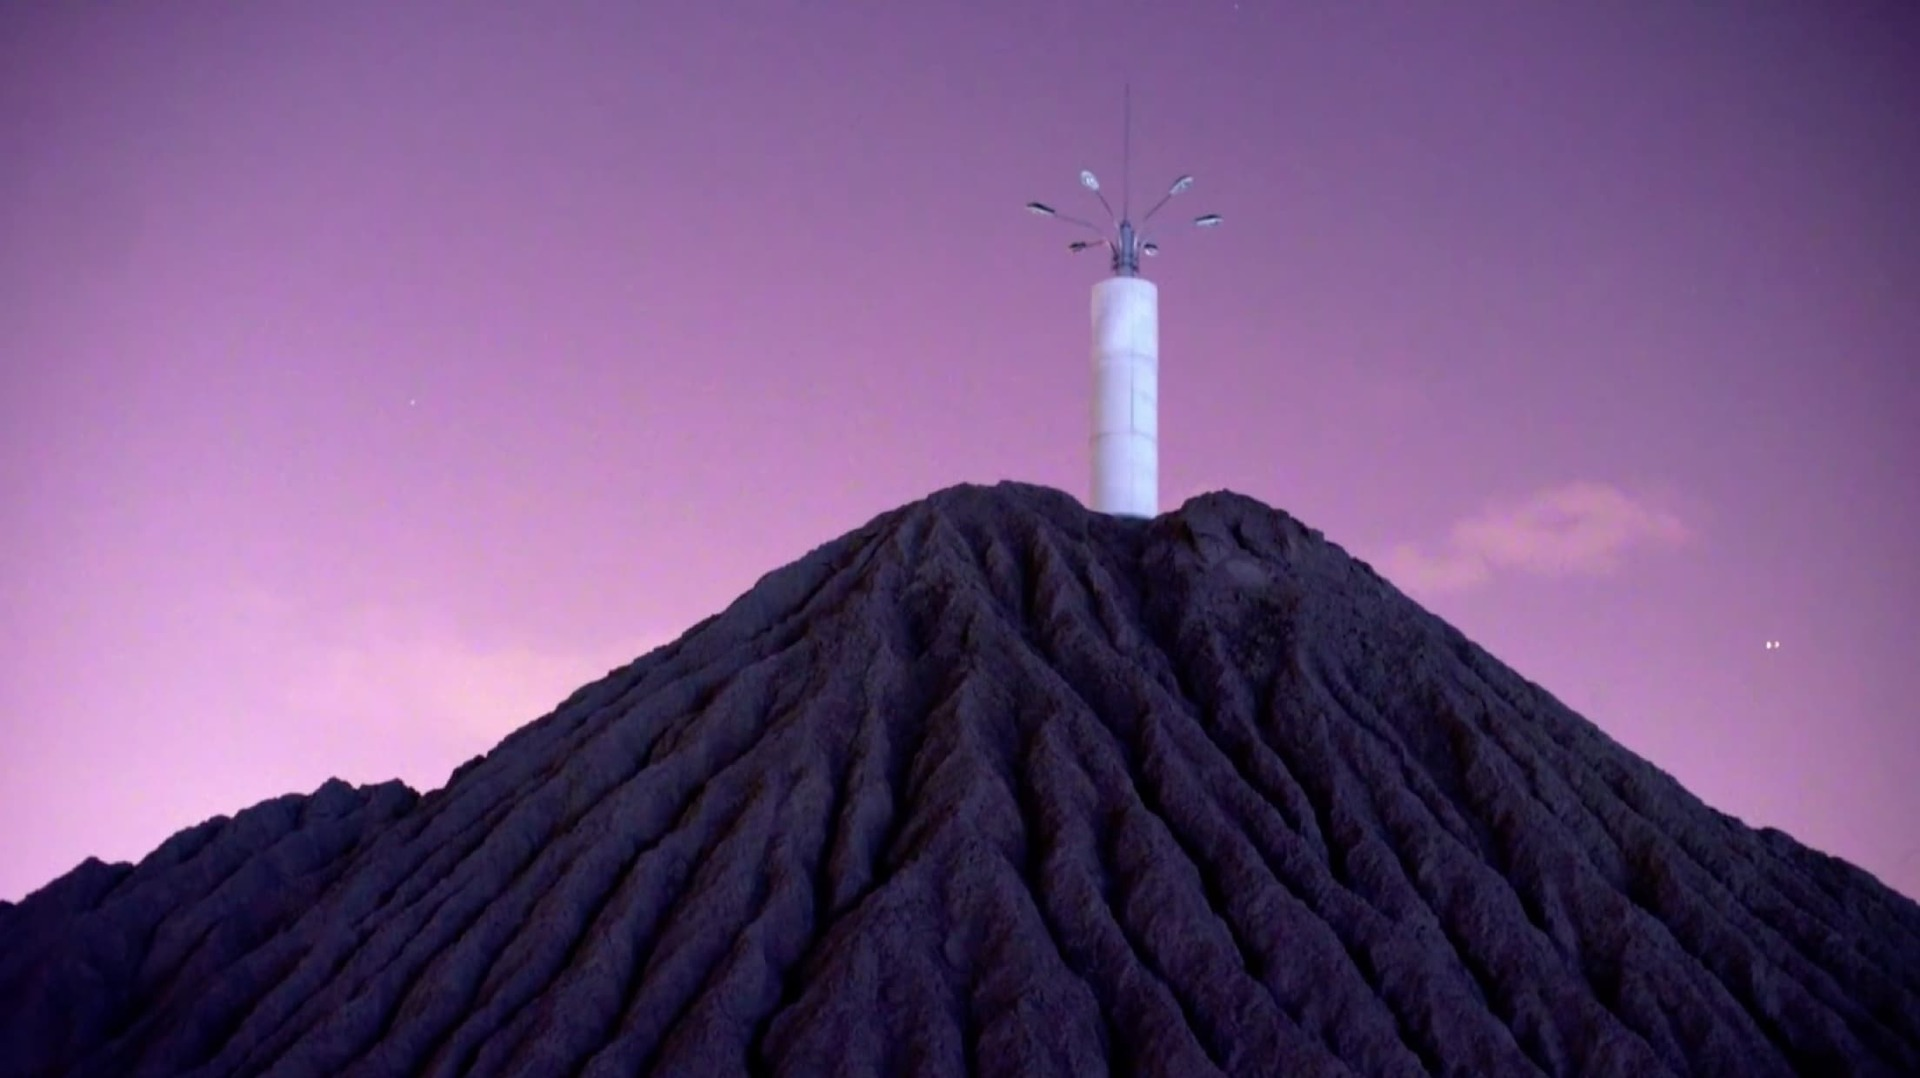 A still from Zhou Tao's Bienalle Arte 2017 entry, depicting a tower of lights against a purple hue night sky, atop a mountain